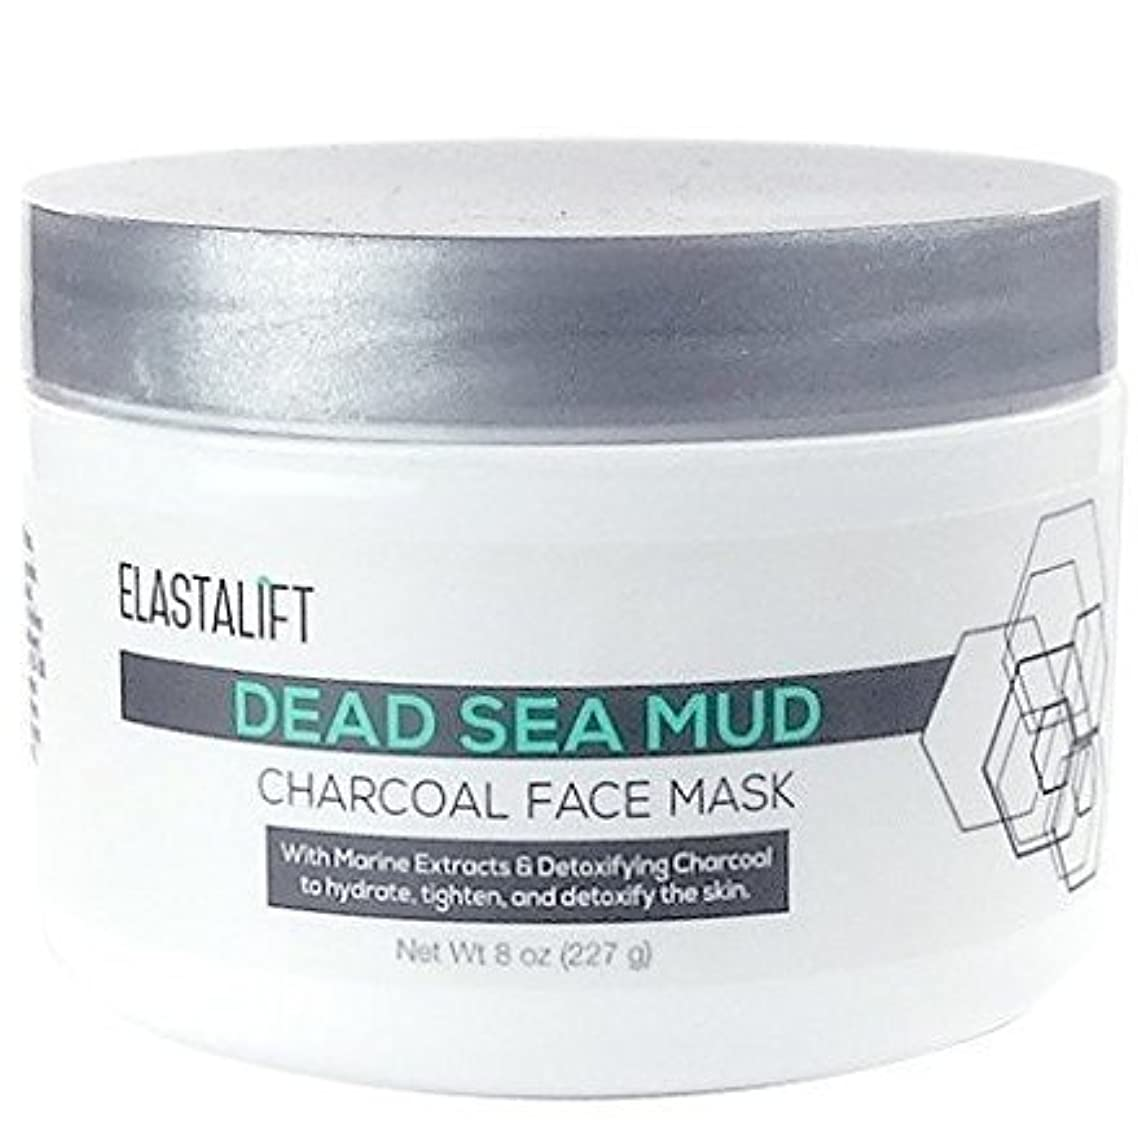 Elastalift Charcoal Face Mask. Detoxifying Dead Sea Mud mask with charcoal will tighten, hydrate and brighten skin. Large 8oz jar.